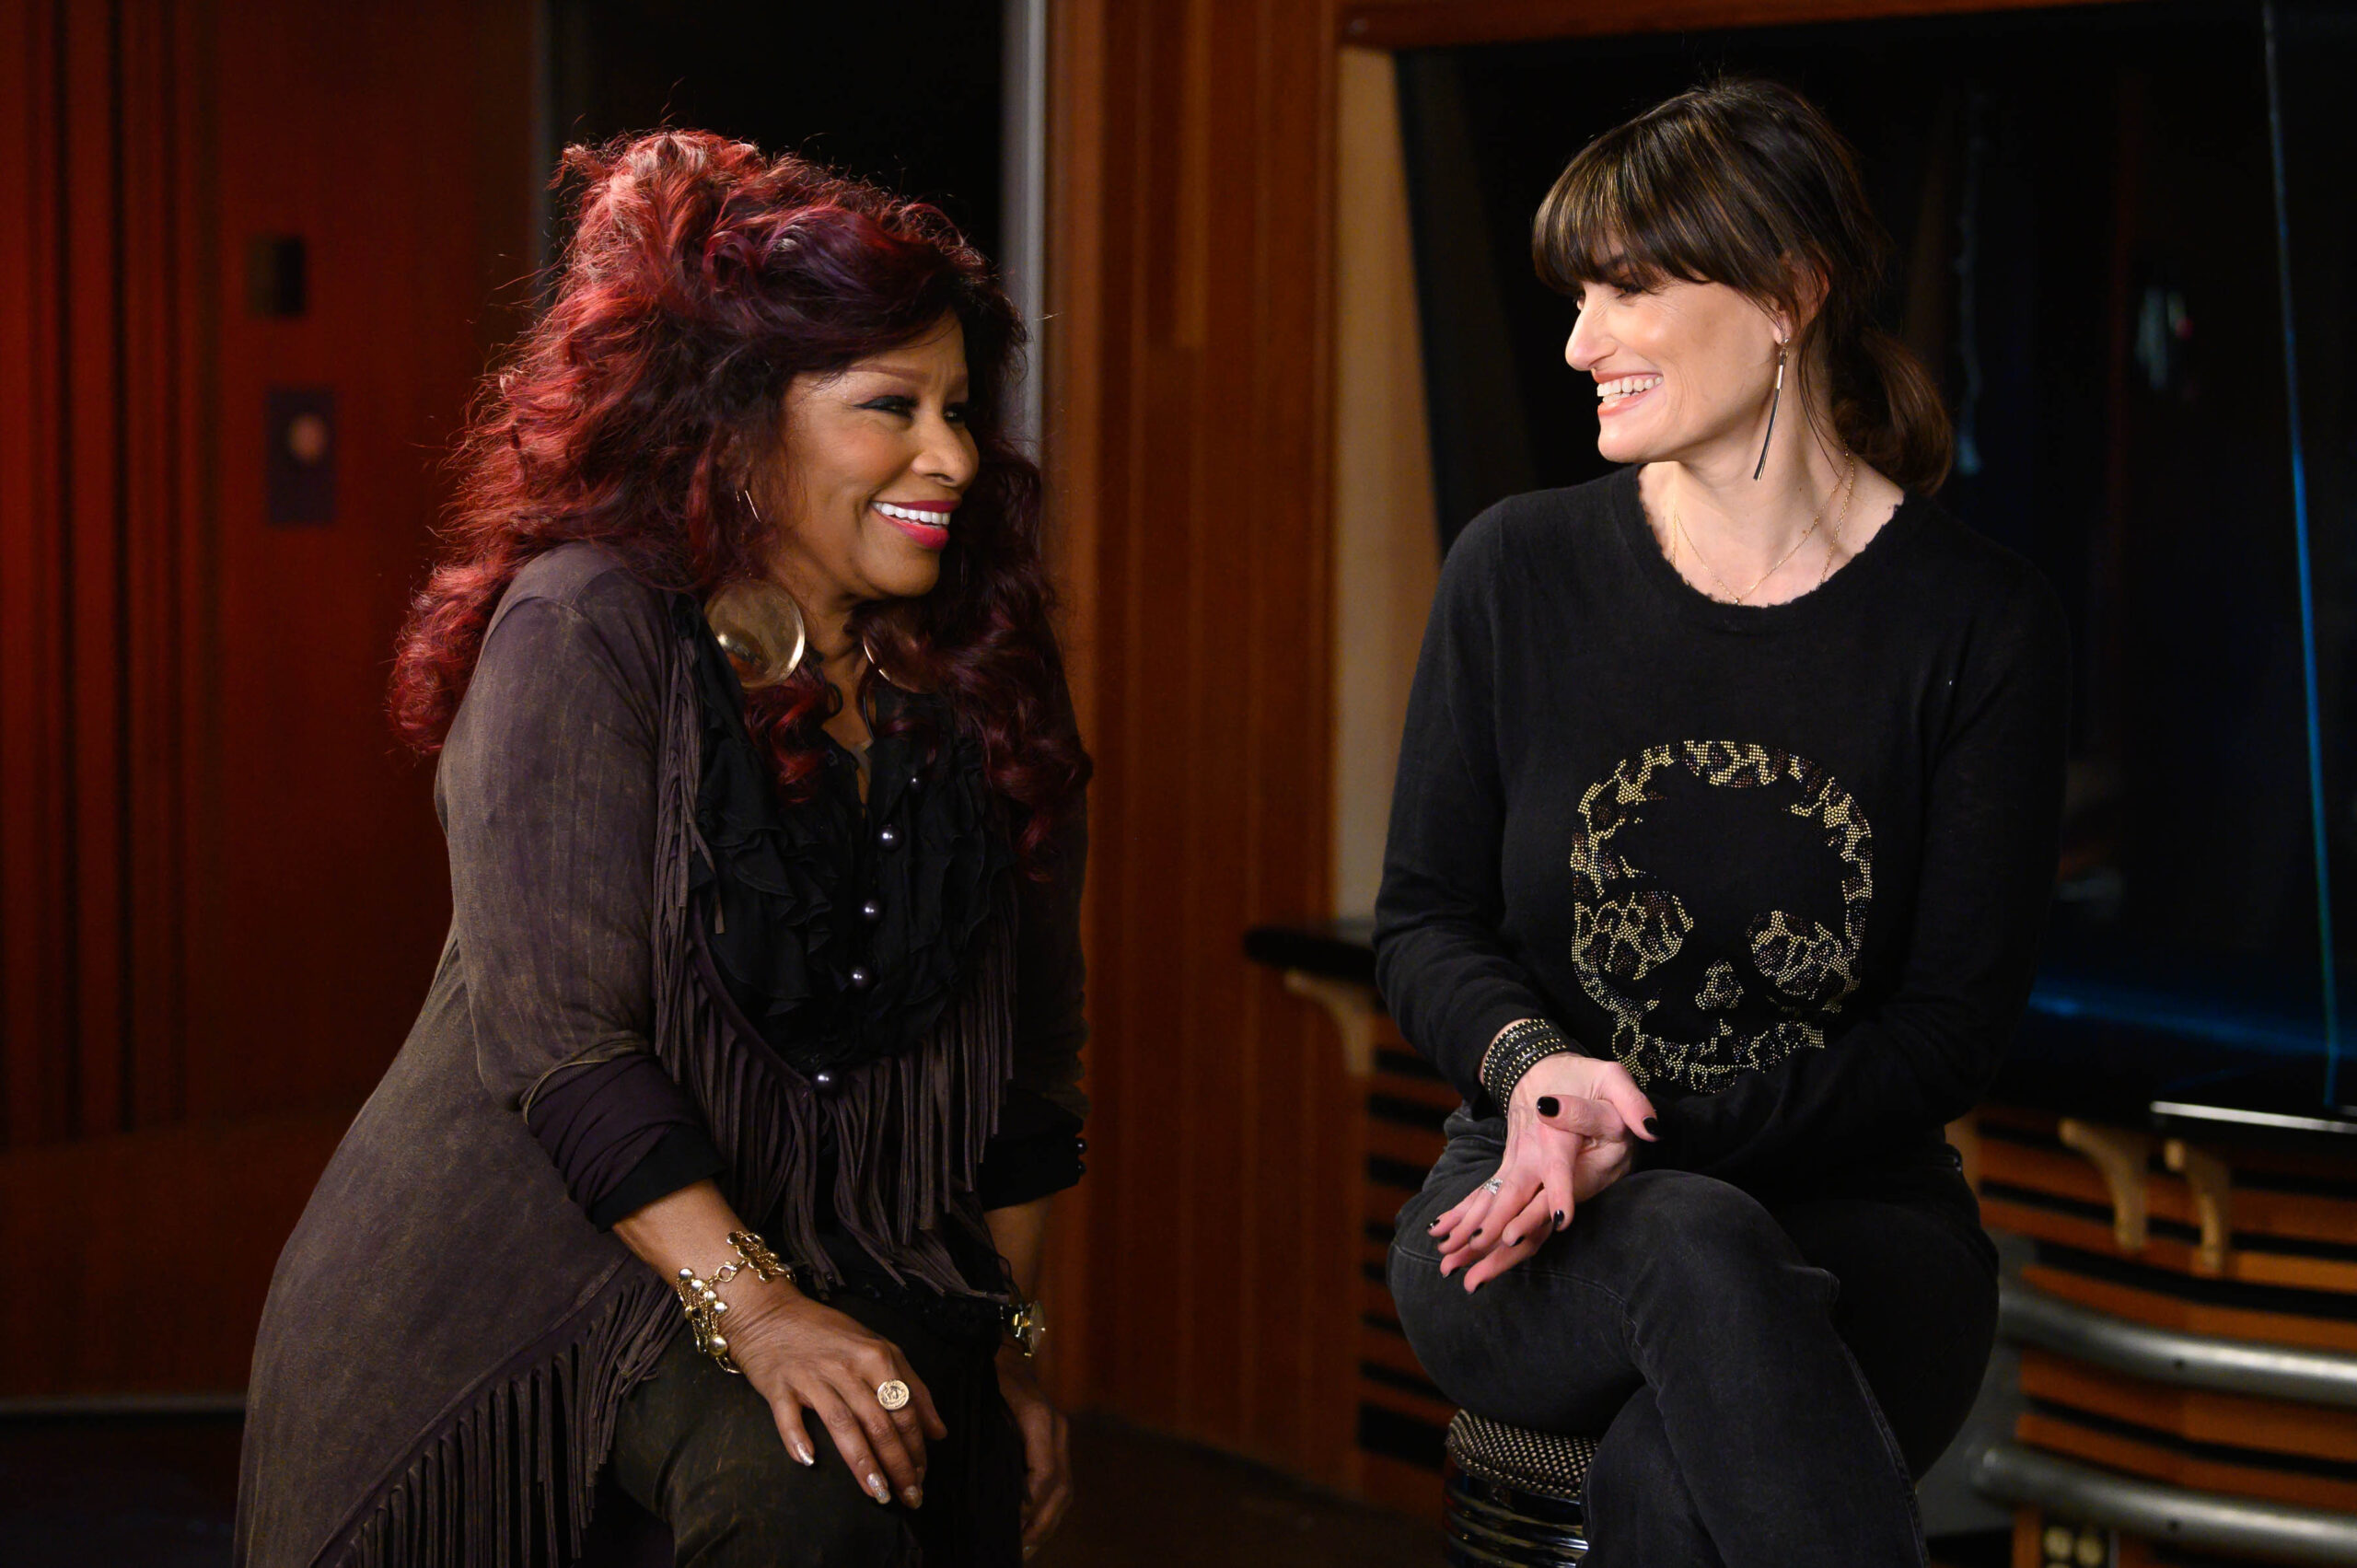 Chaka Khan and Idina Menzel smile widely as they sit next to each other on stools in a recording booth.